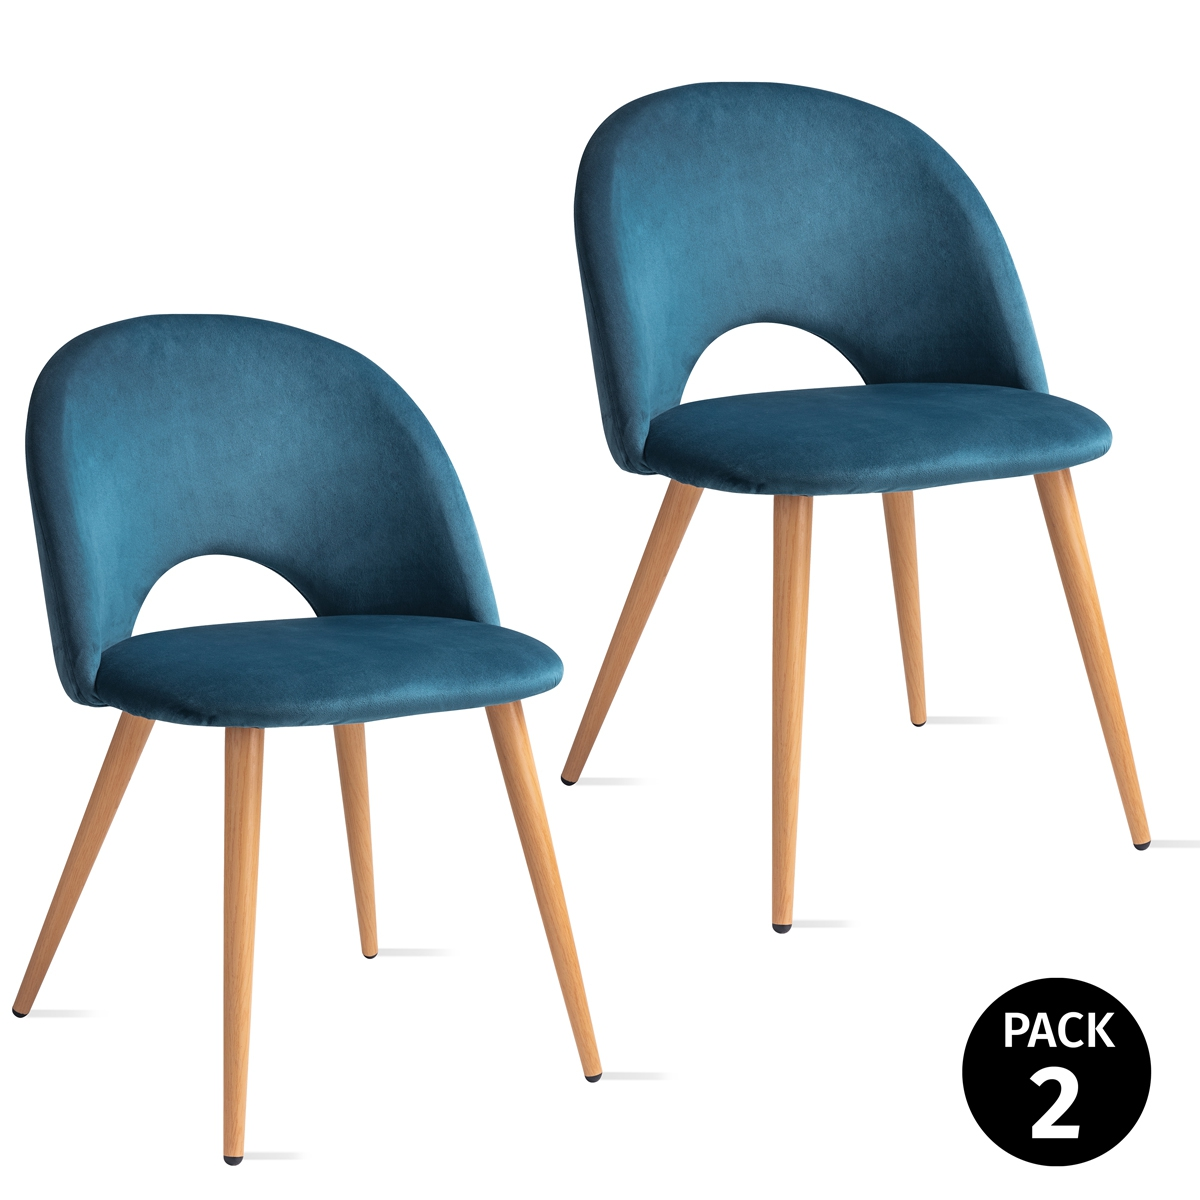 Pack 2 Chairs For Dining Room Room Design Nordico Sky Blue MOON Model 49x46x76cm